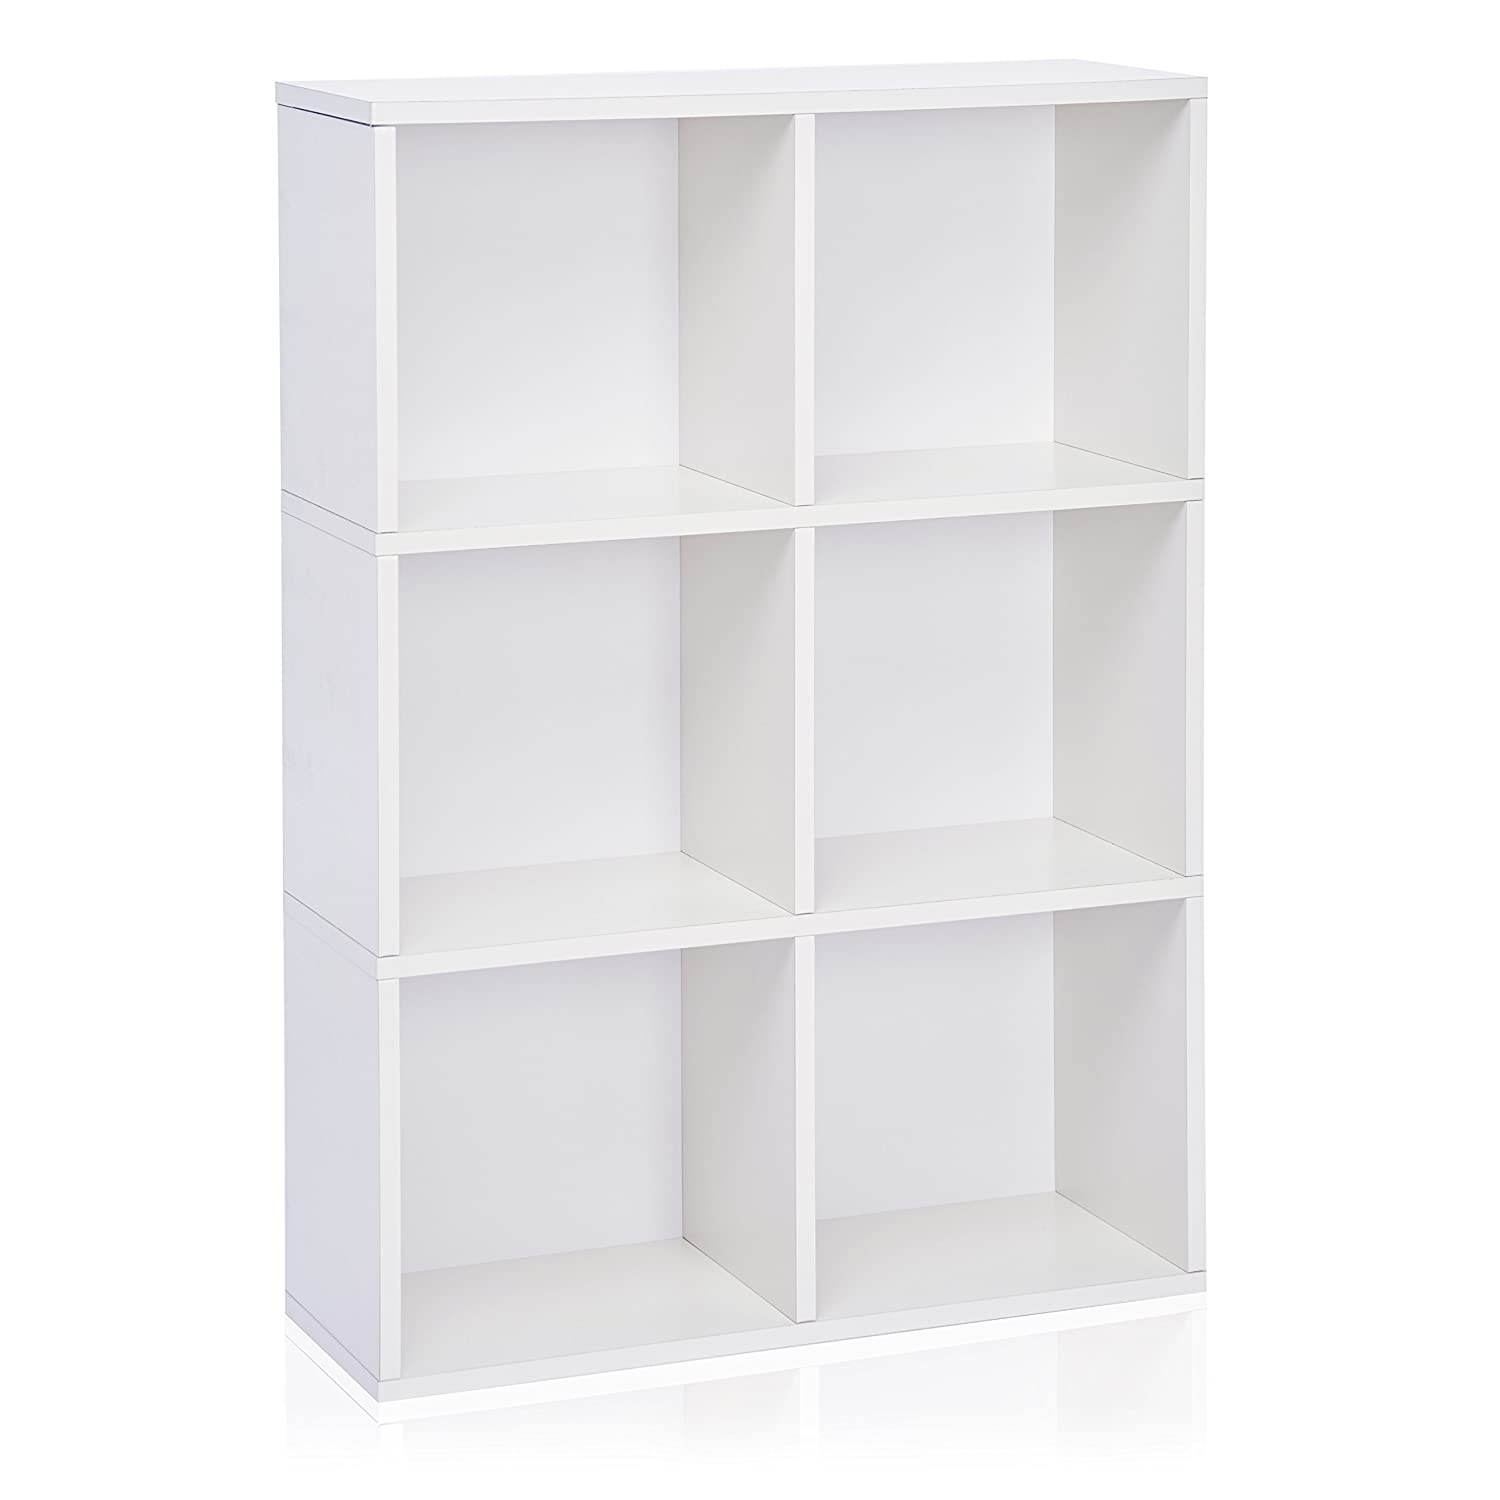 Way Basics PS-285-815-1150-EO Tribeca Bookcase and Storage Shelf, Espresso